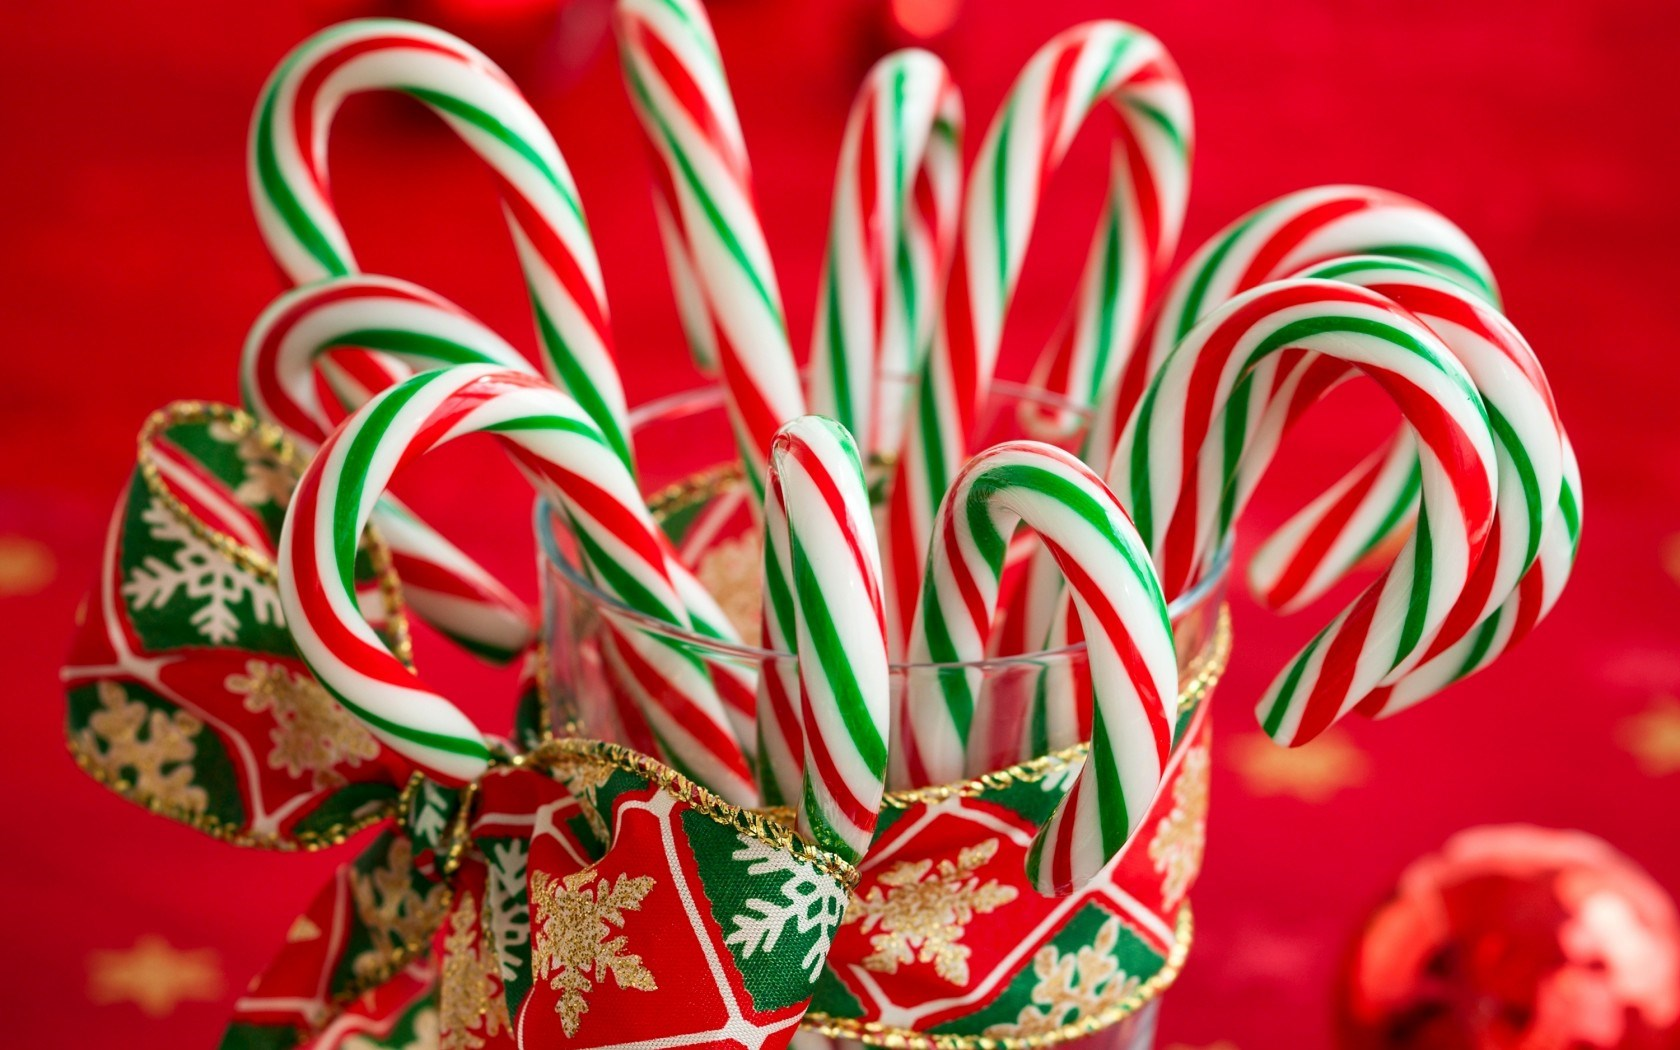 Candy Canes Striped Christmas New Year Holiday